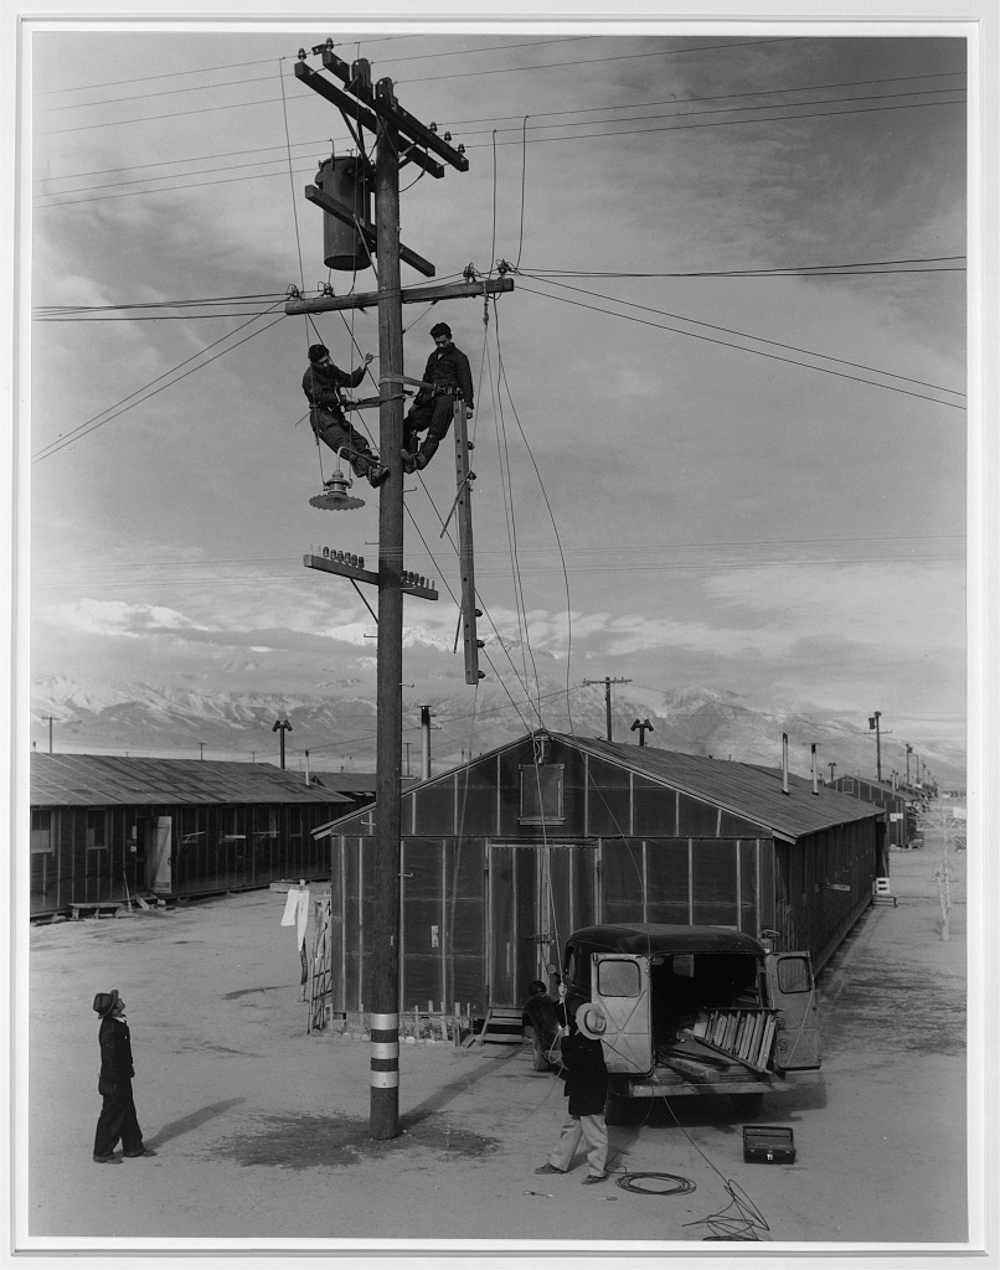 Line crew at work in Manzanar, Manzanar Relocation Center, Manzanar, California